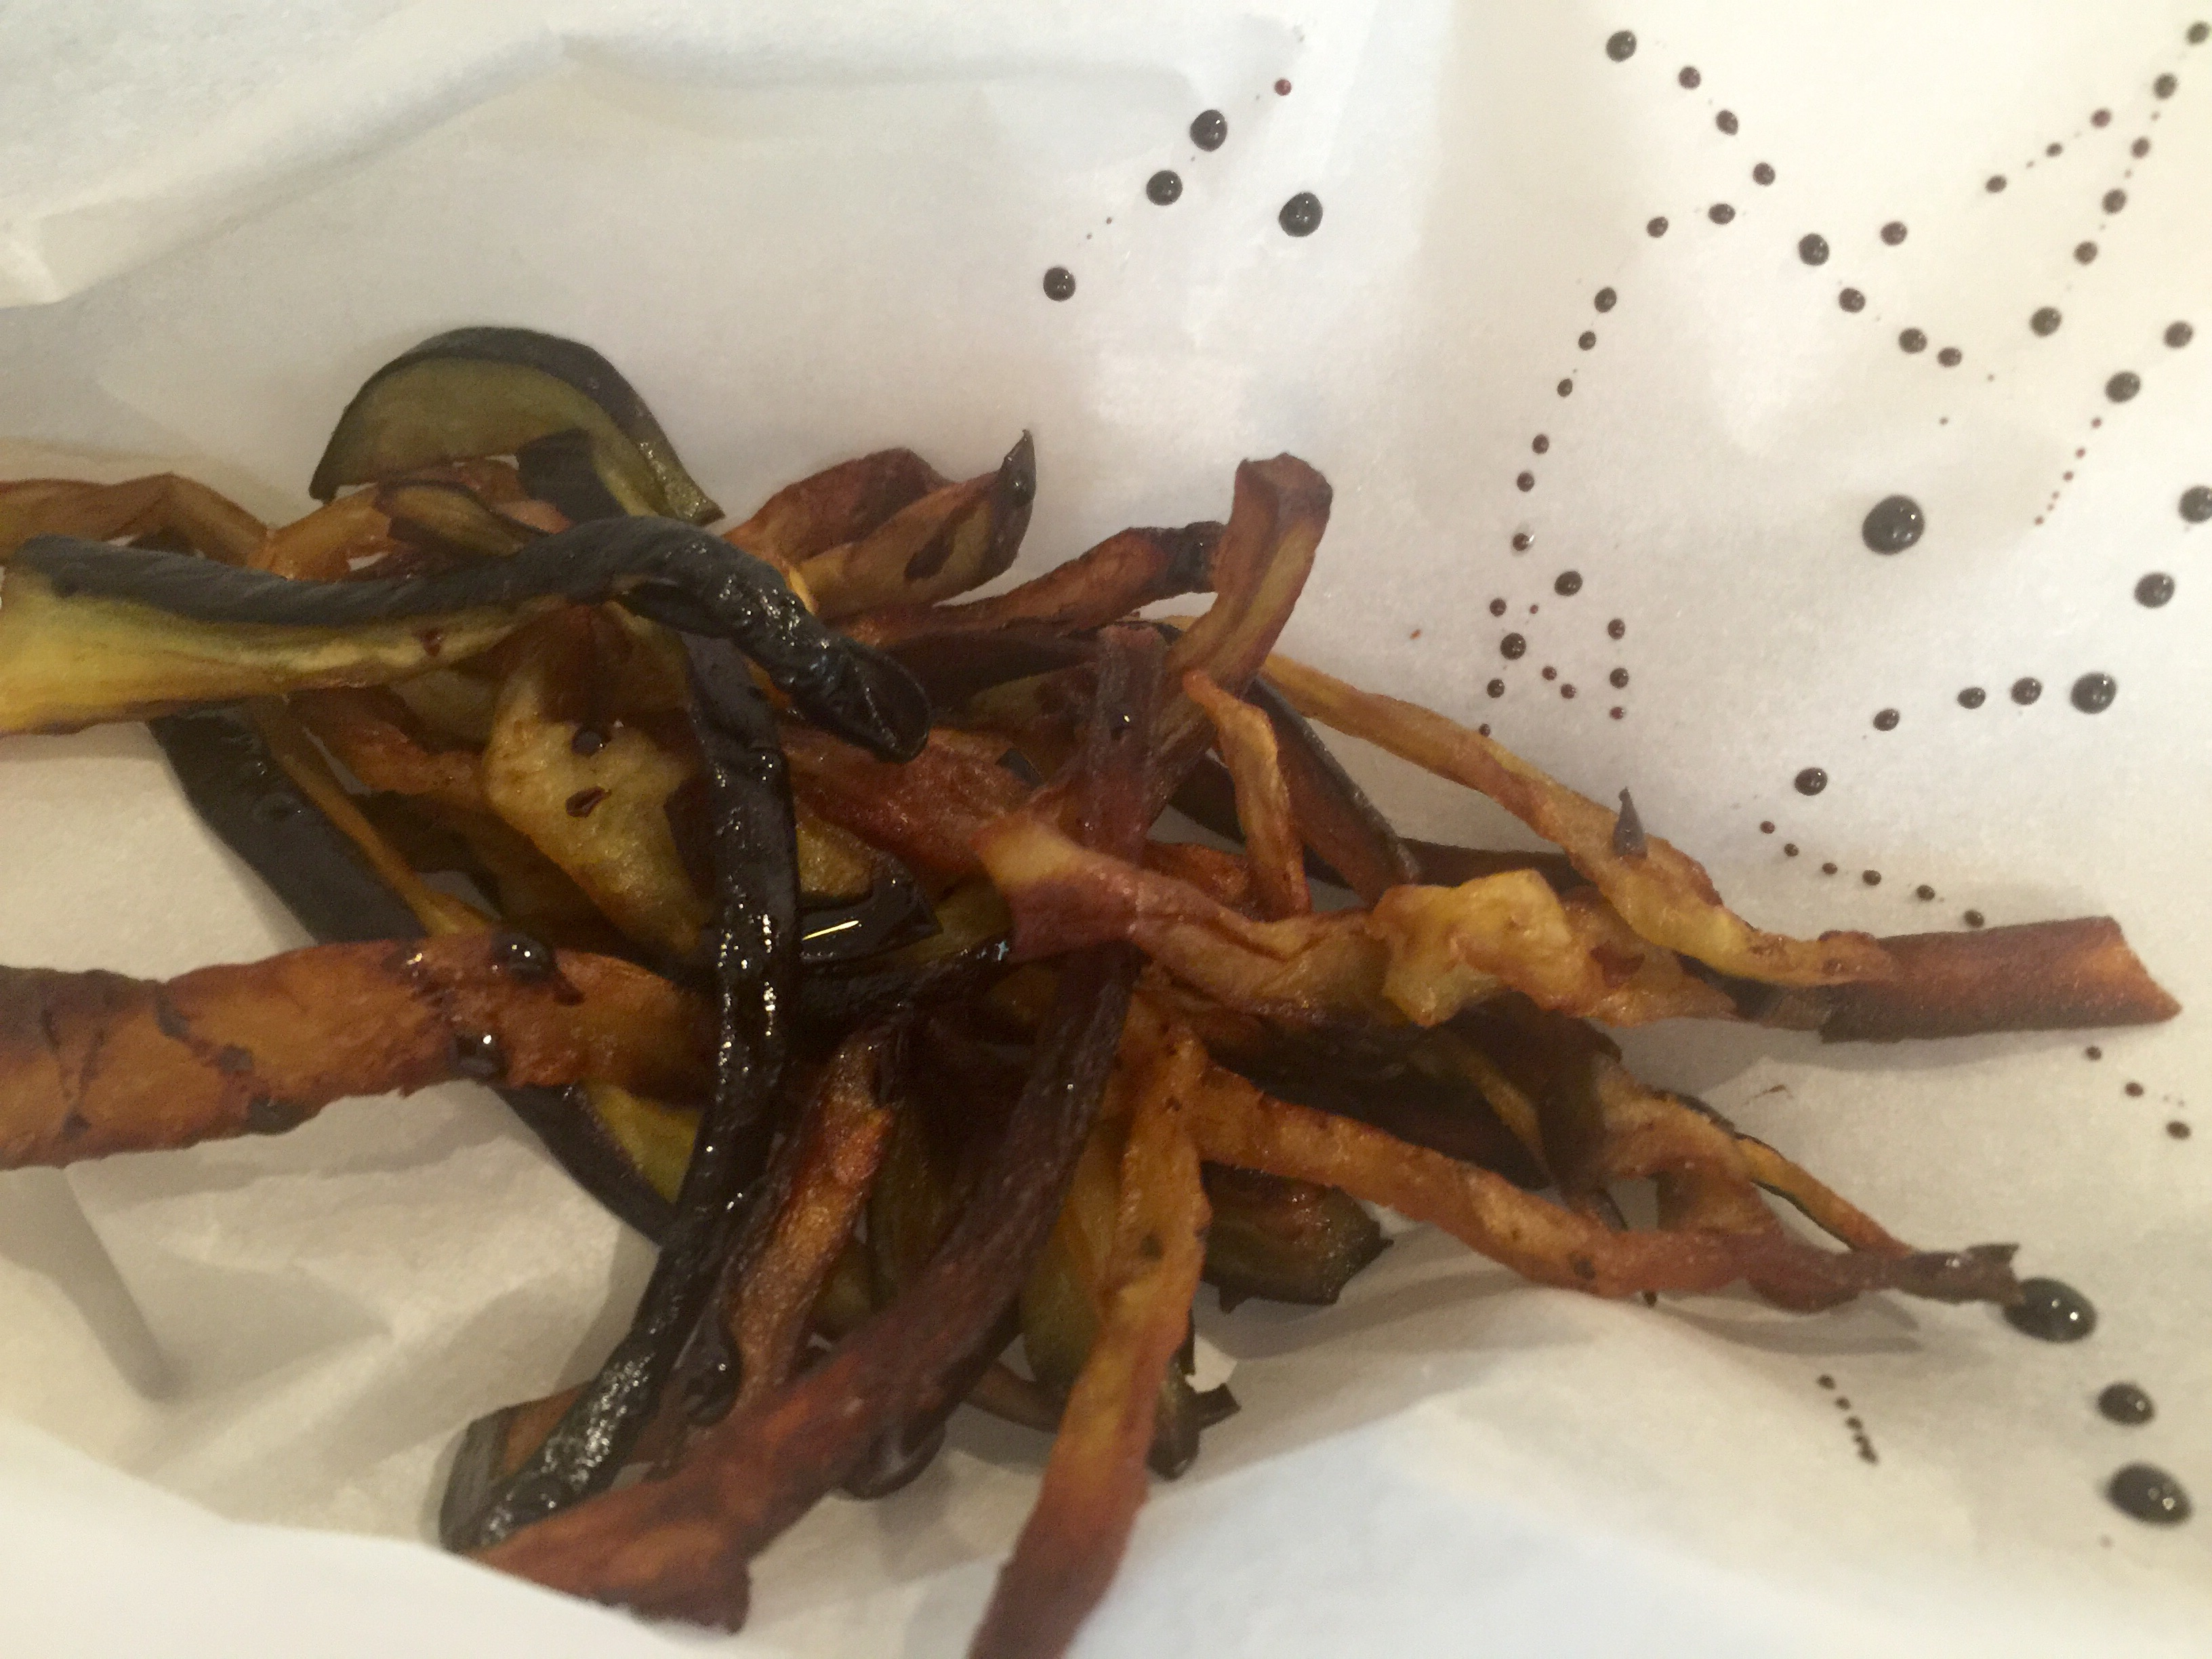 Eggplant Fries with Molasses and Sea Salt